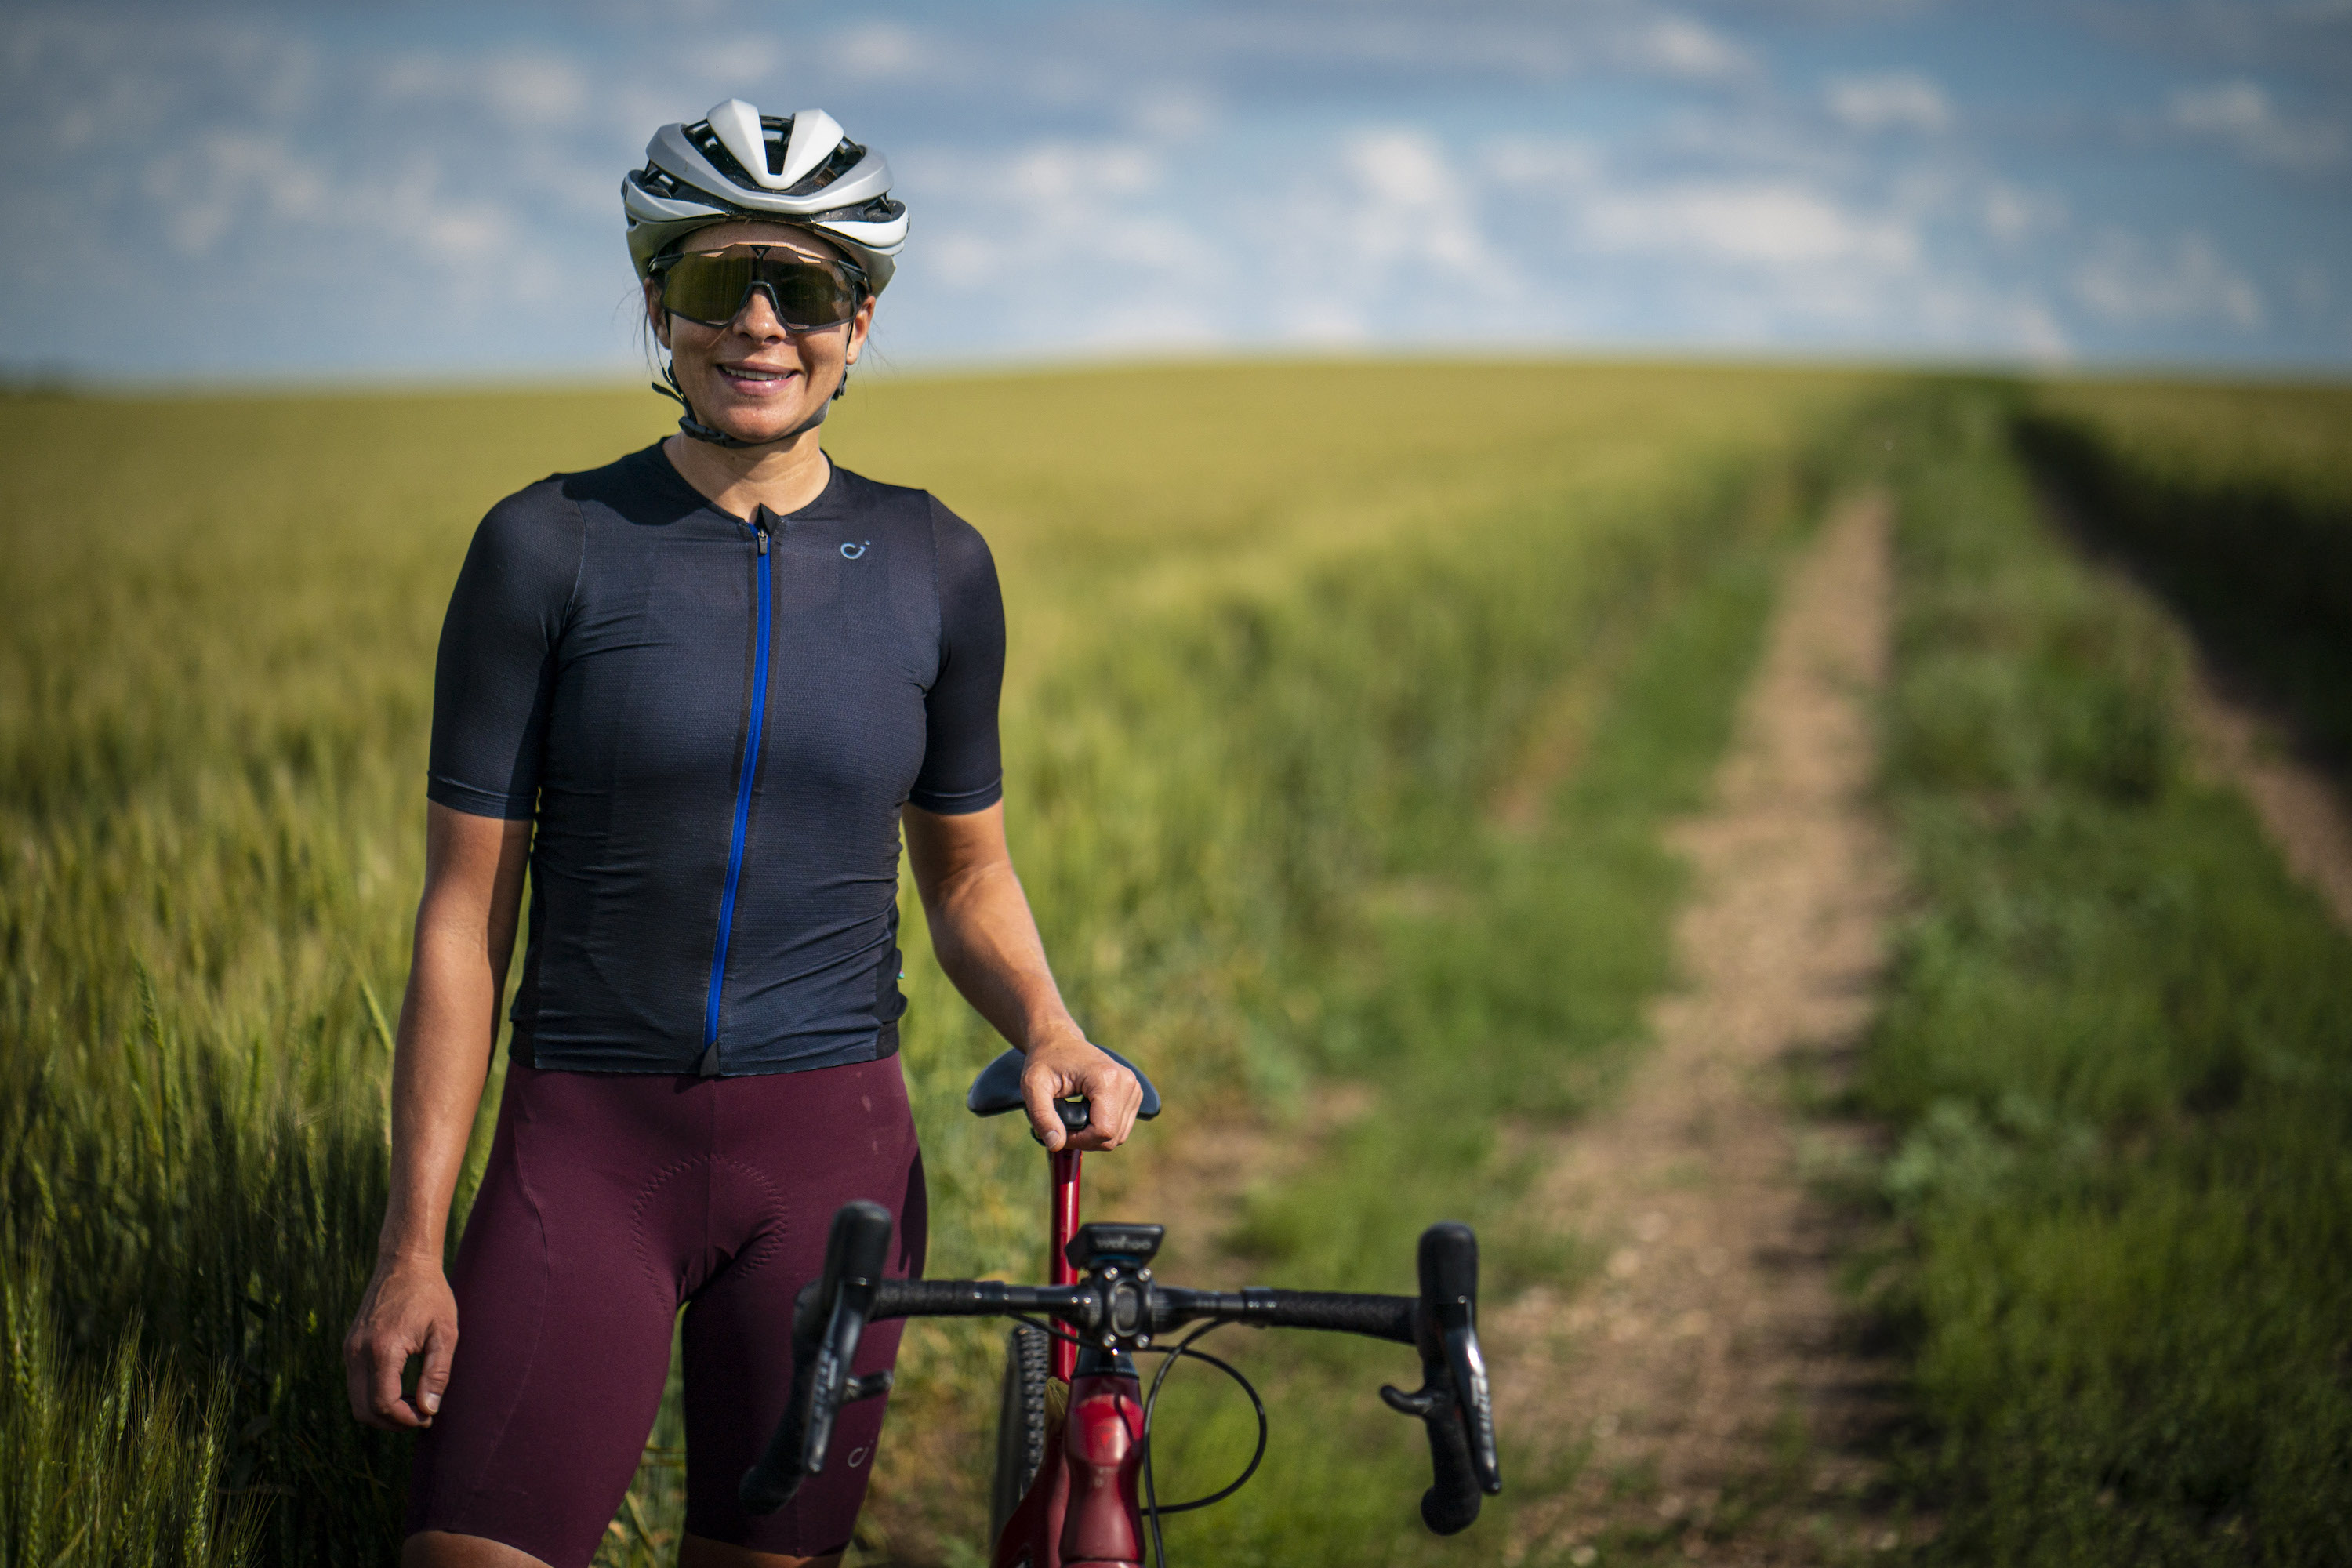 Jess Cerra in a navy jersey top and red bike shorts standing in a field next to her gravel bike, she is wearing a white helmet and smiling